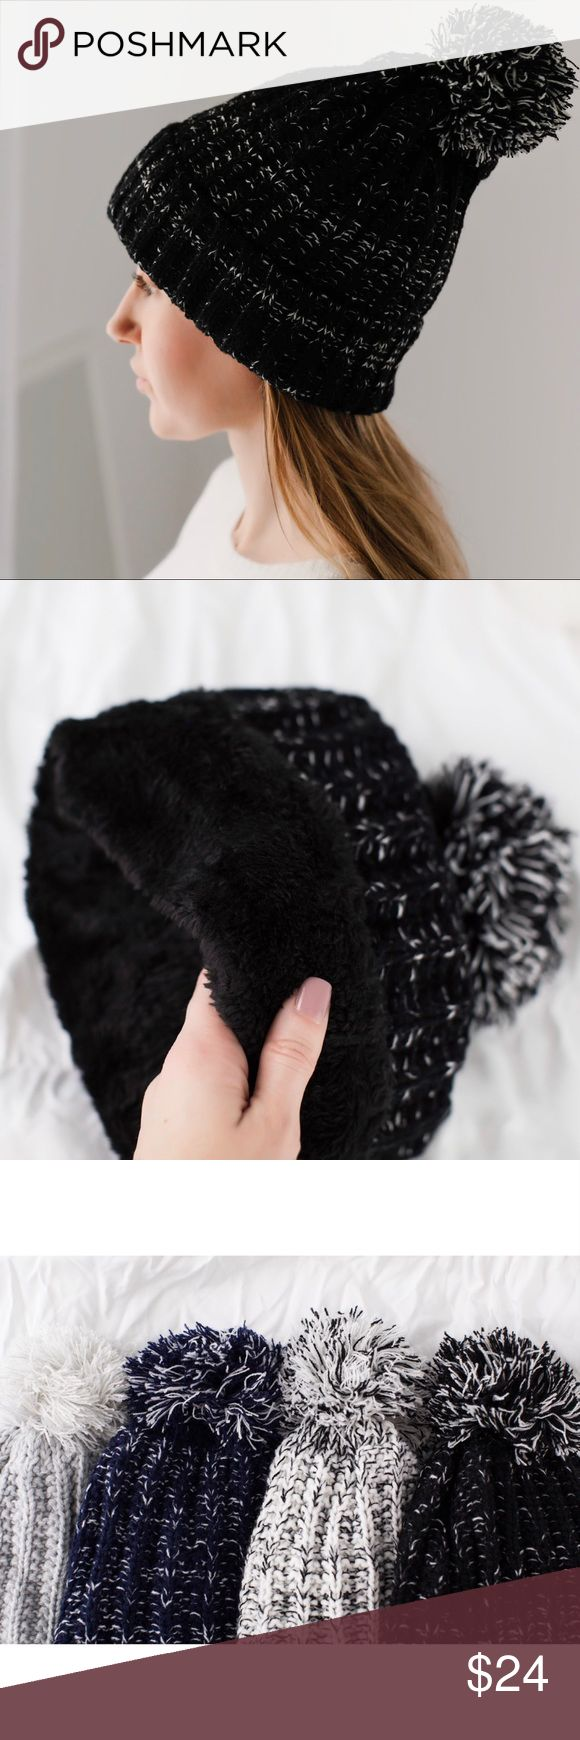 🆕High Line Plush Lined Hat 🌟Buyer favorite🌟 I am happy to bring back my plush lined hats this winter in new colors!  Marled black/white knit, the interior has black furry plush lining which is INCREDIBLE! So soft & warm. Acrylic material, cozy and not itchy. Once you wear this, no other hat will suffice when it starts to snow ☃️Also in navy, white, gray.   ▫️Price is firm 📷 Photos are my own 11thstreet Accessories Hats